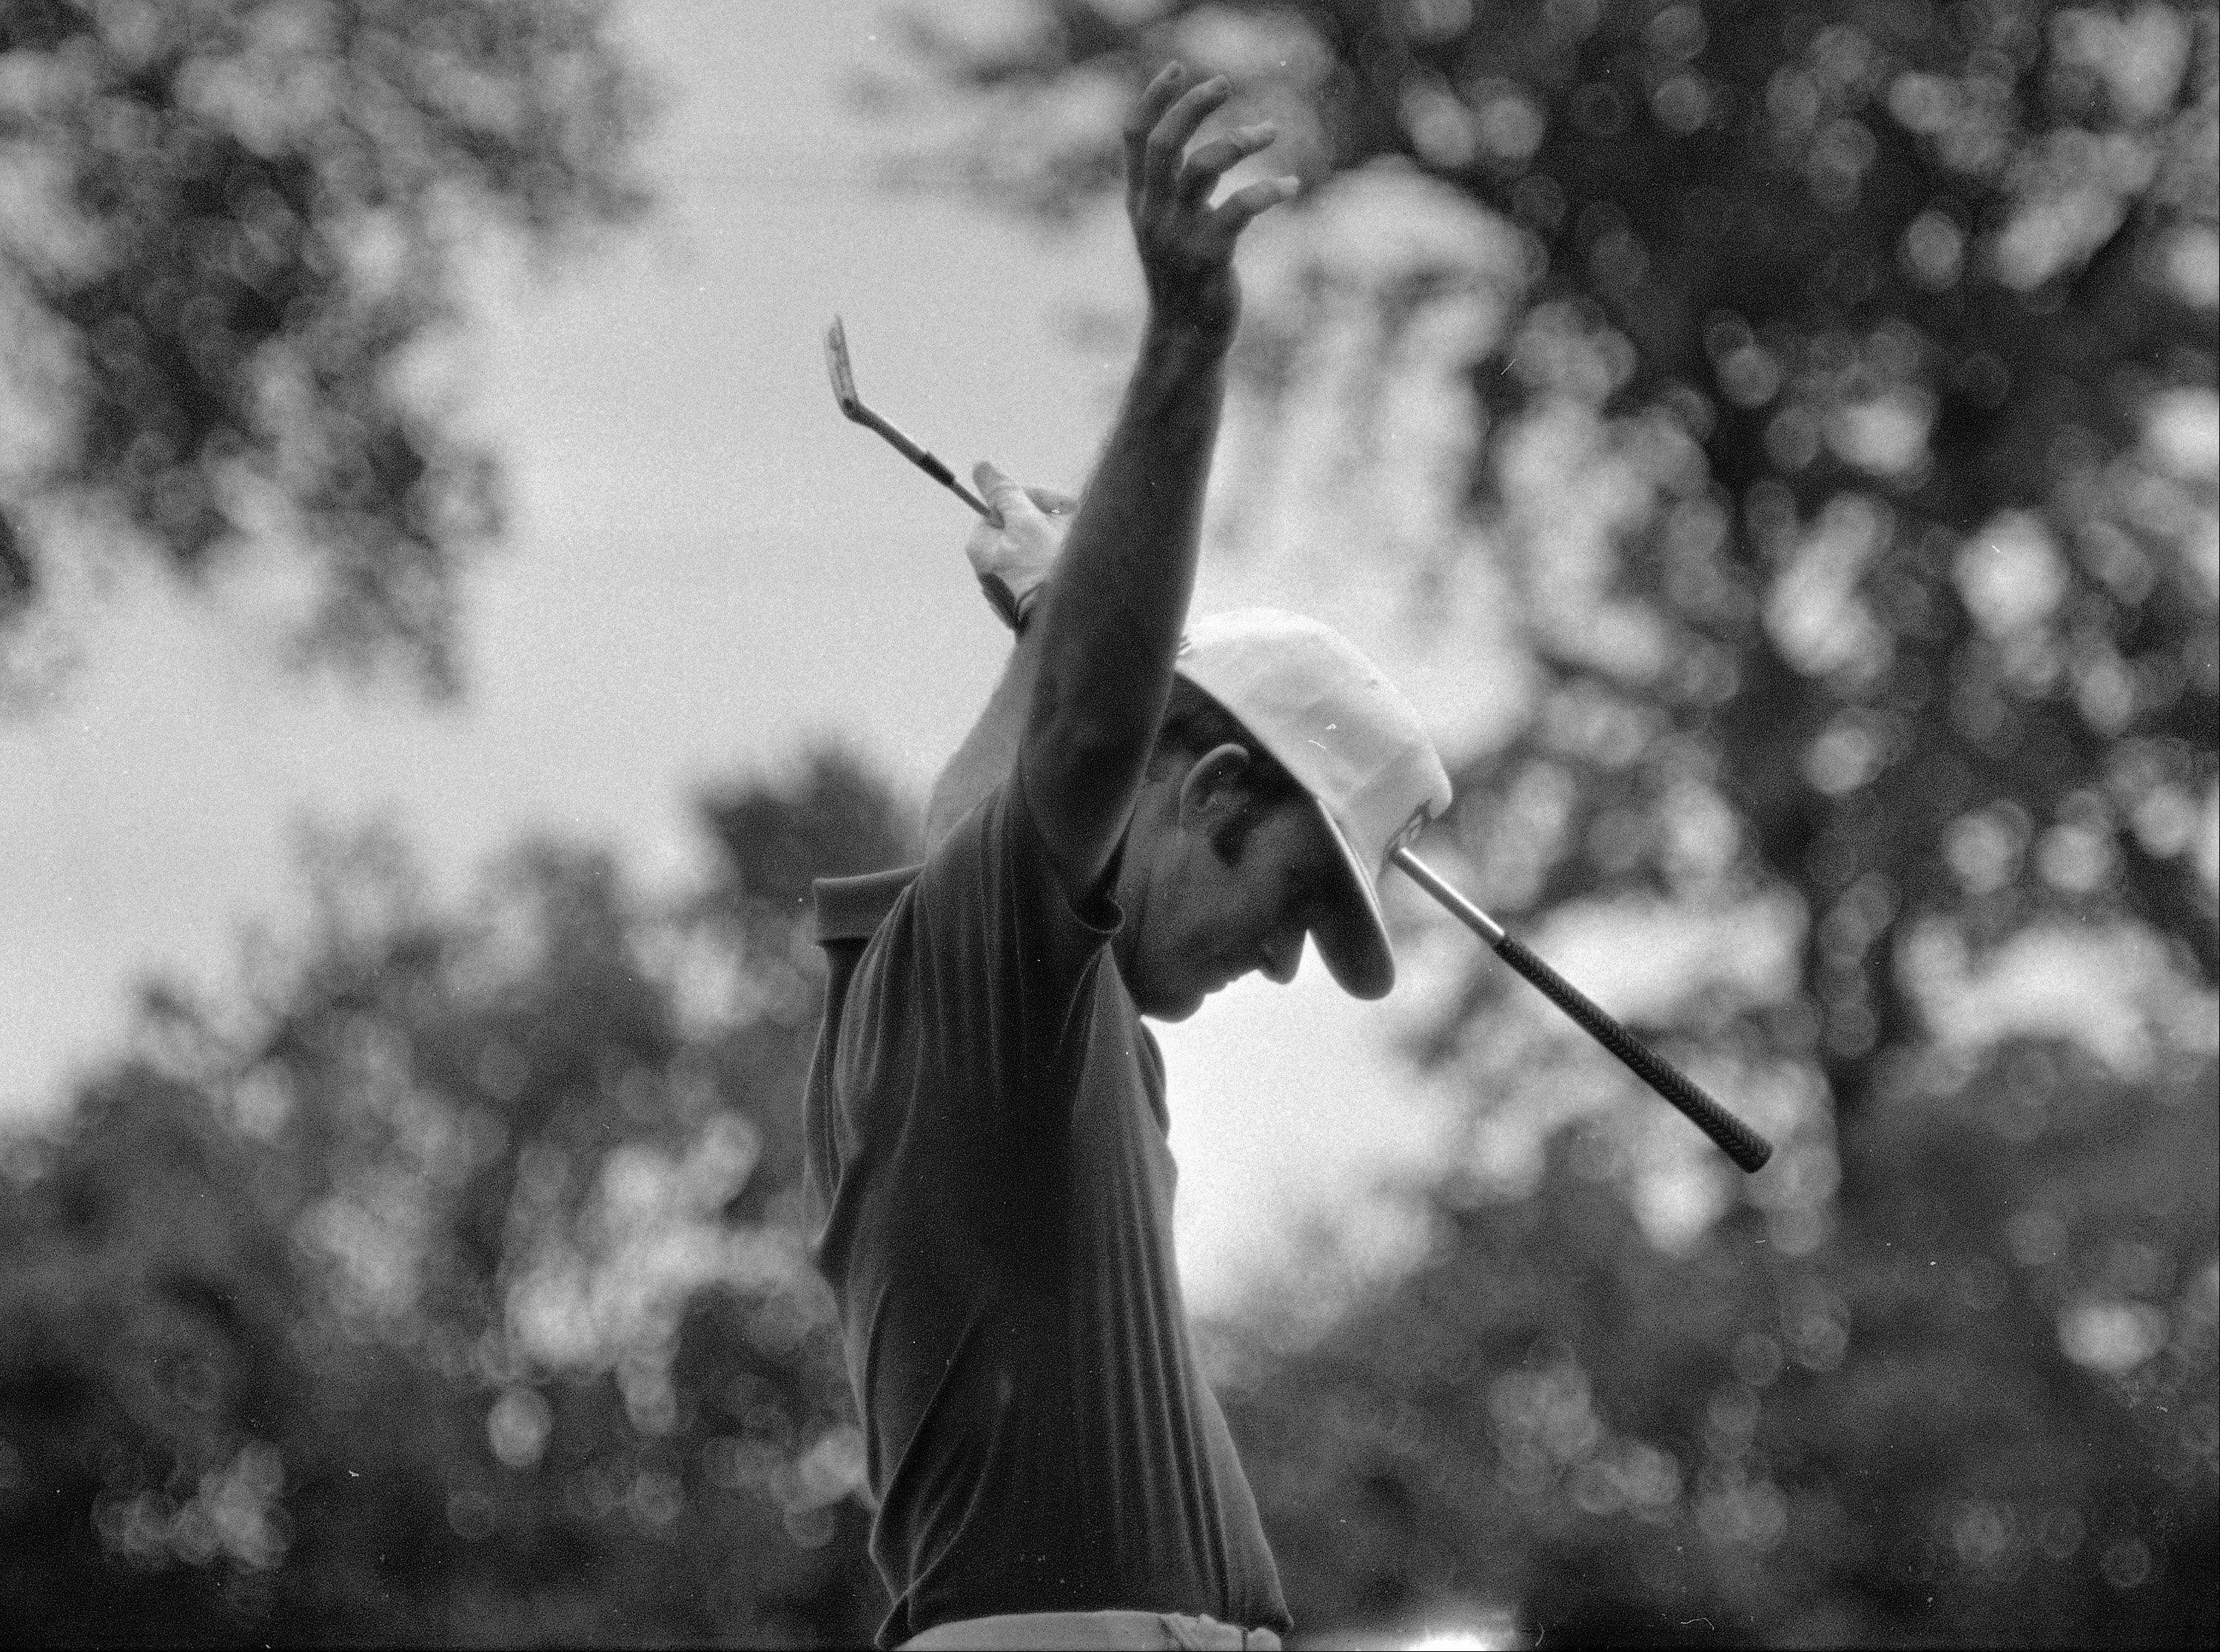 Lou Graham waves his arms after hitting a shot from the rough to within three feet of the pin on the 583-yard, par, five 10th hole at Medinah, June 23, 1975. Graham went on to sink the putt for a birdie and go three-up on his opponent John Mahaffey, Jr., in the U.S. Open playoff.